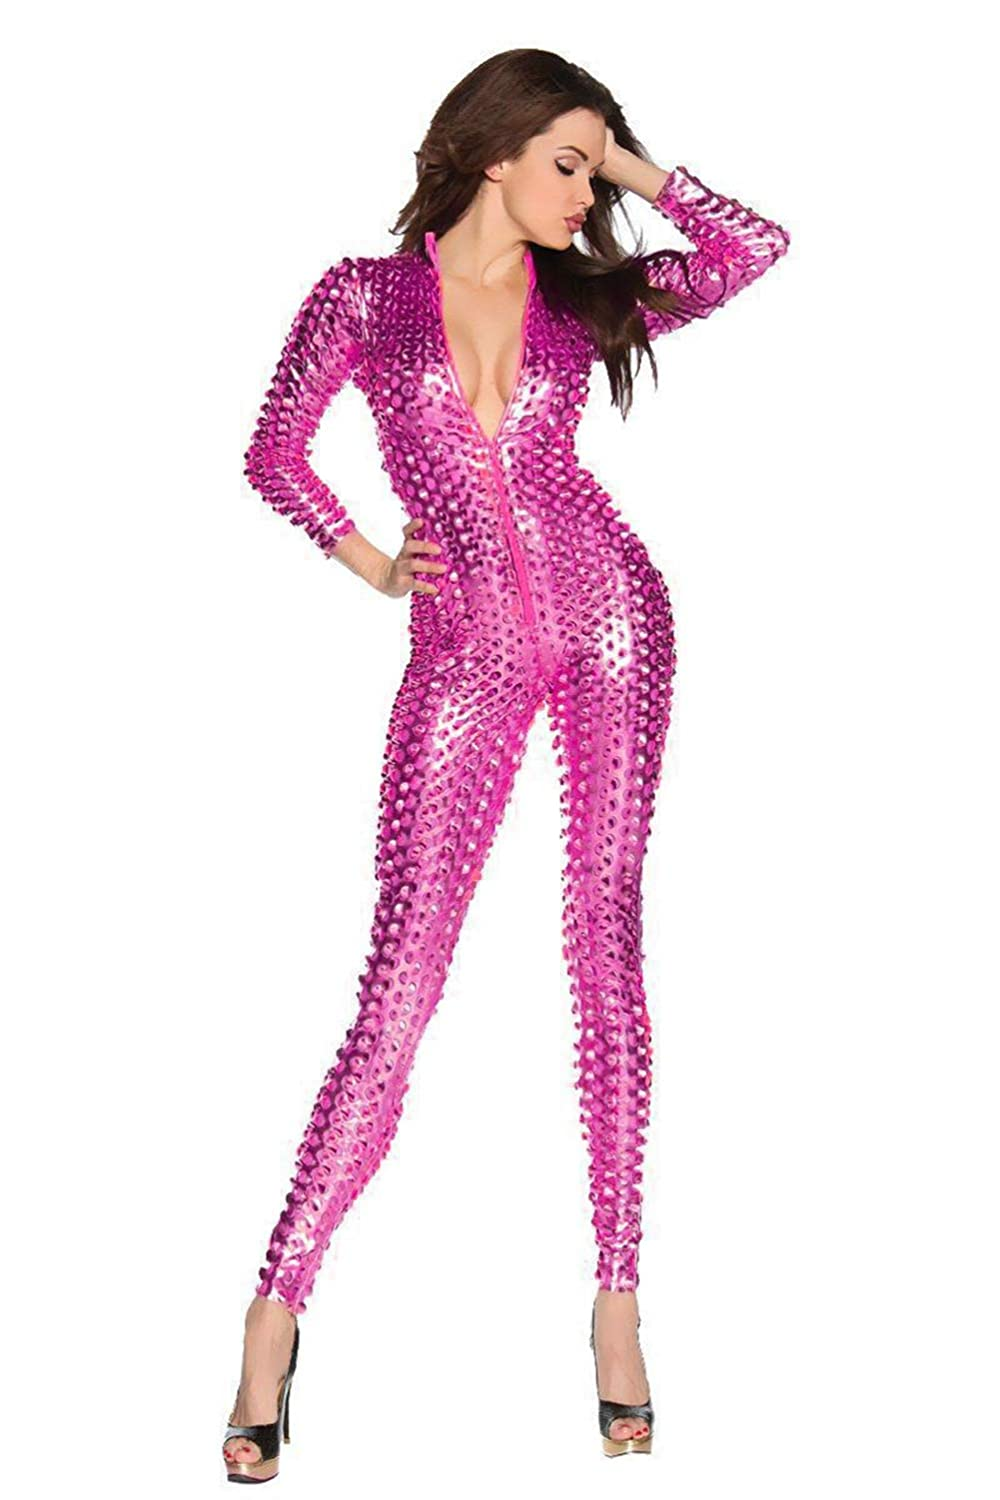 Imitation Leather Tight One Piece Pants Hole Stage Show Clothing Catsuit